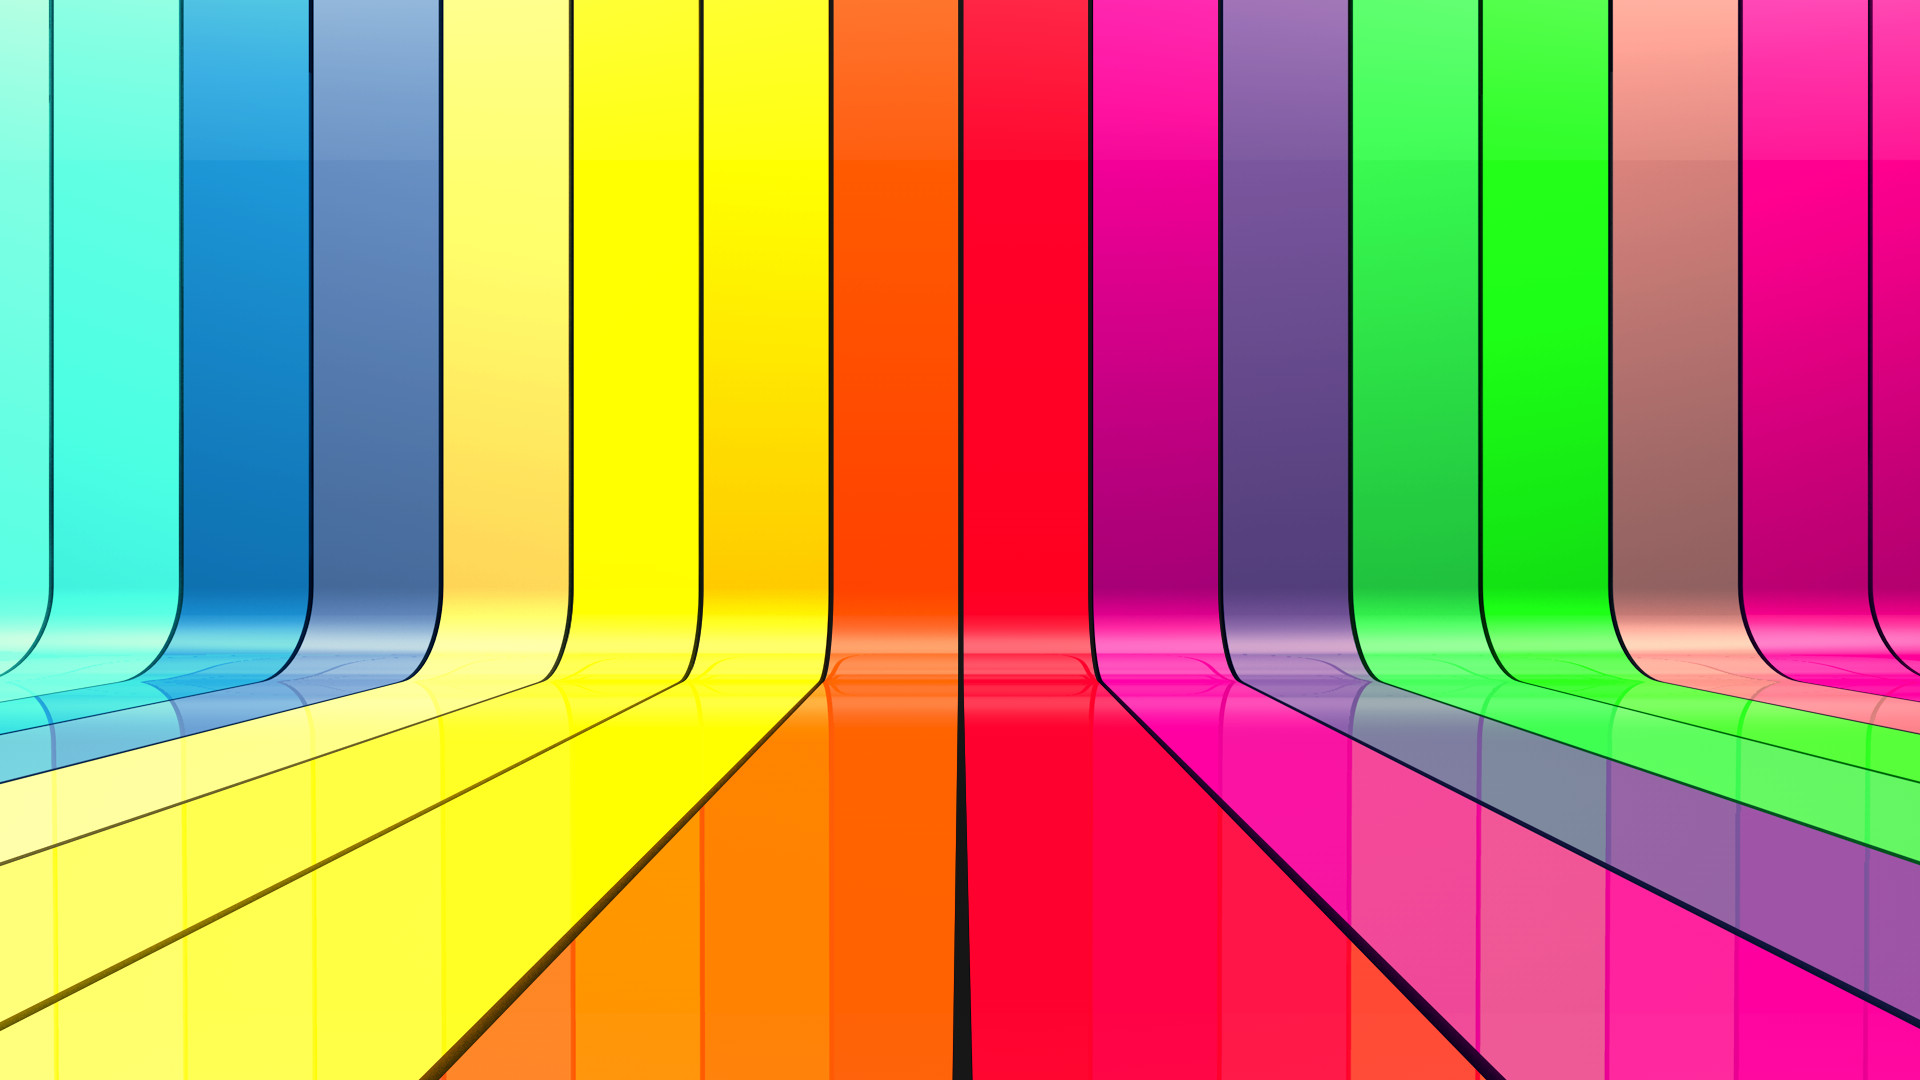 Colorful Striped Wallpaper 61 Images